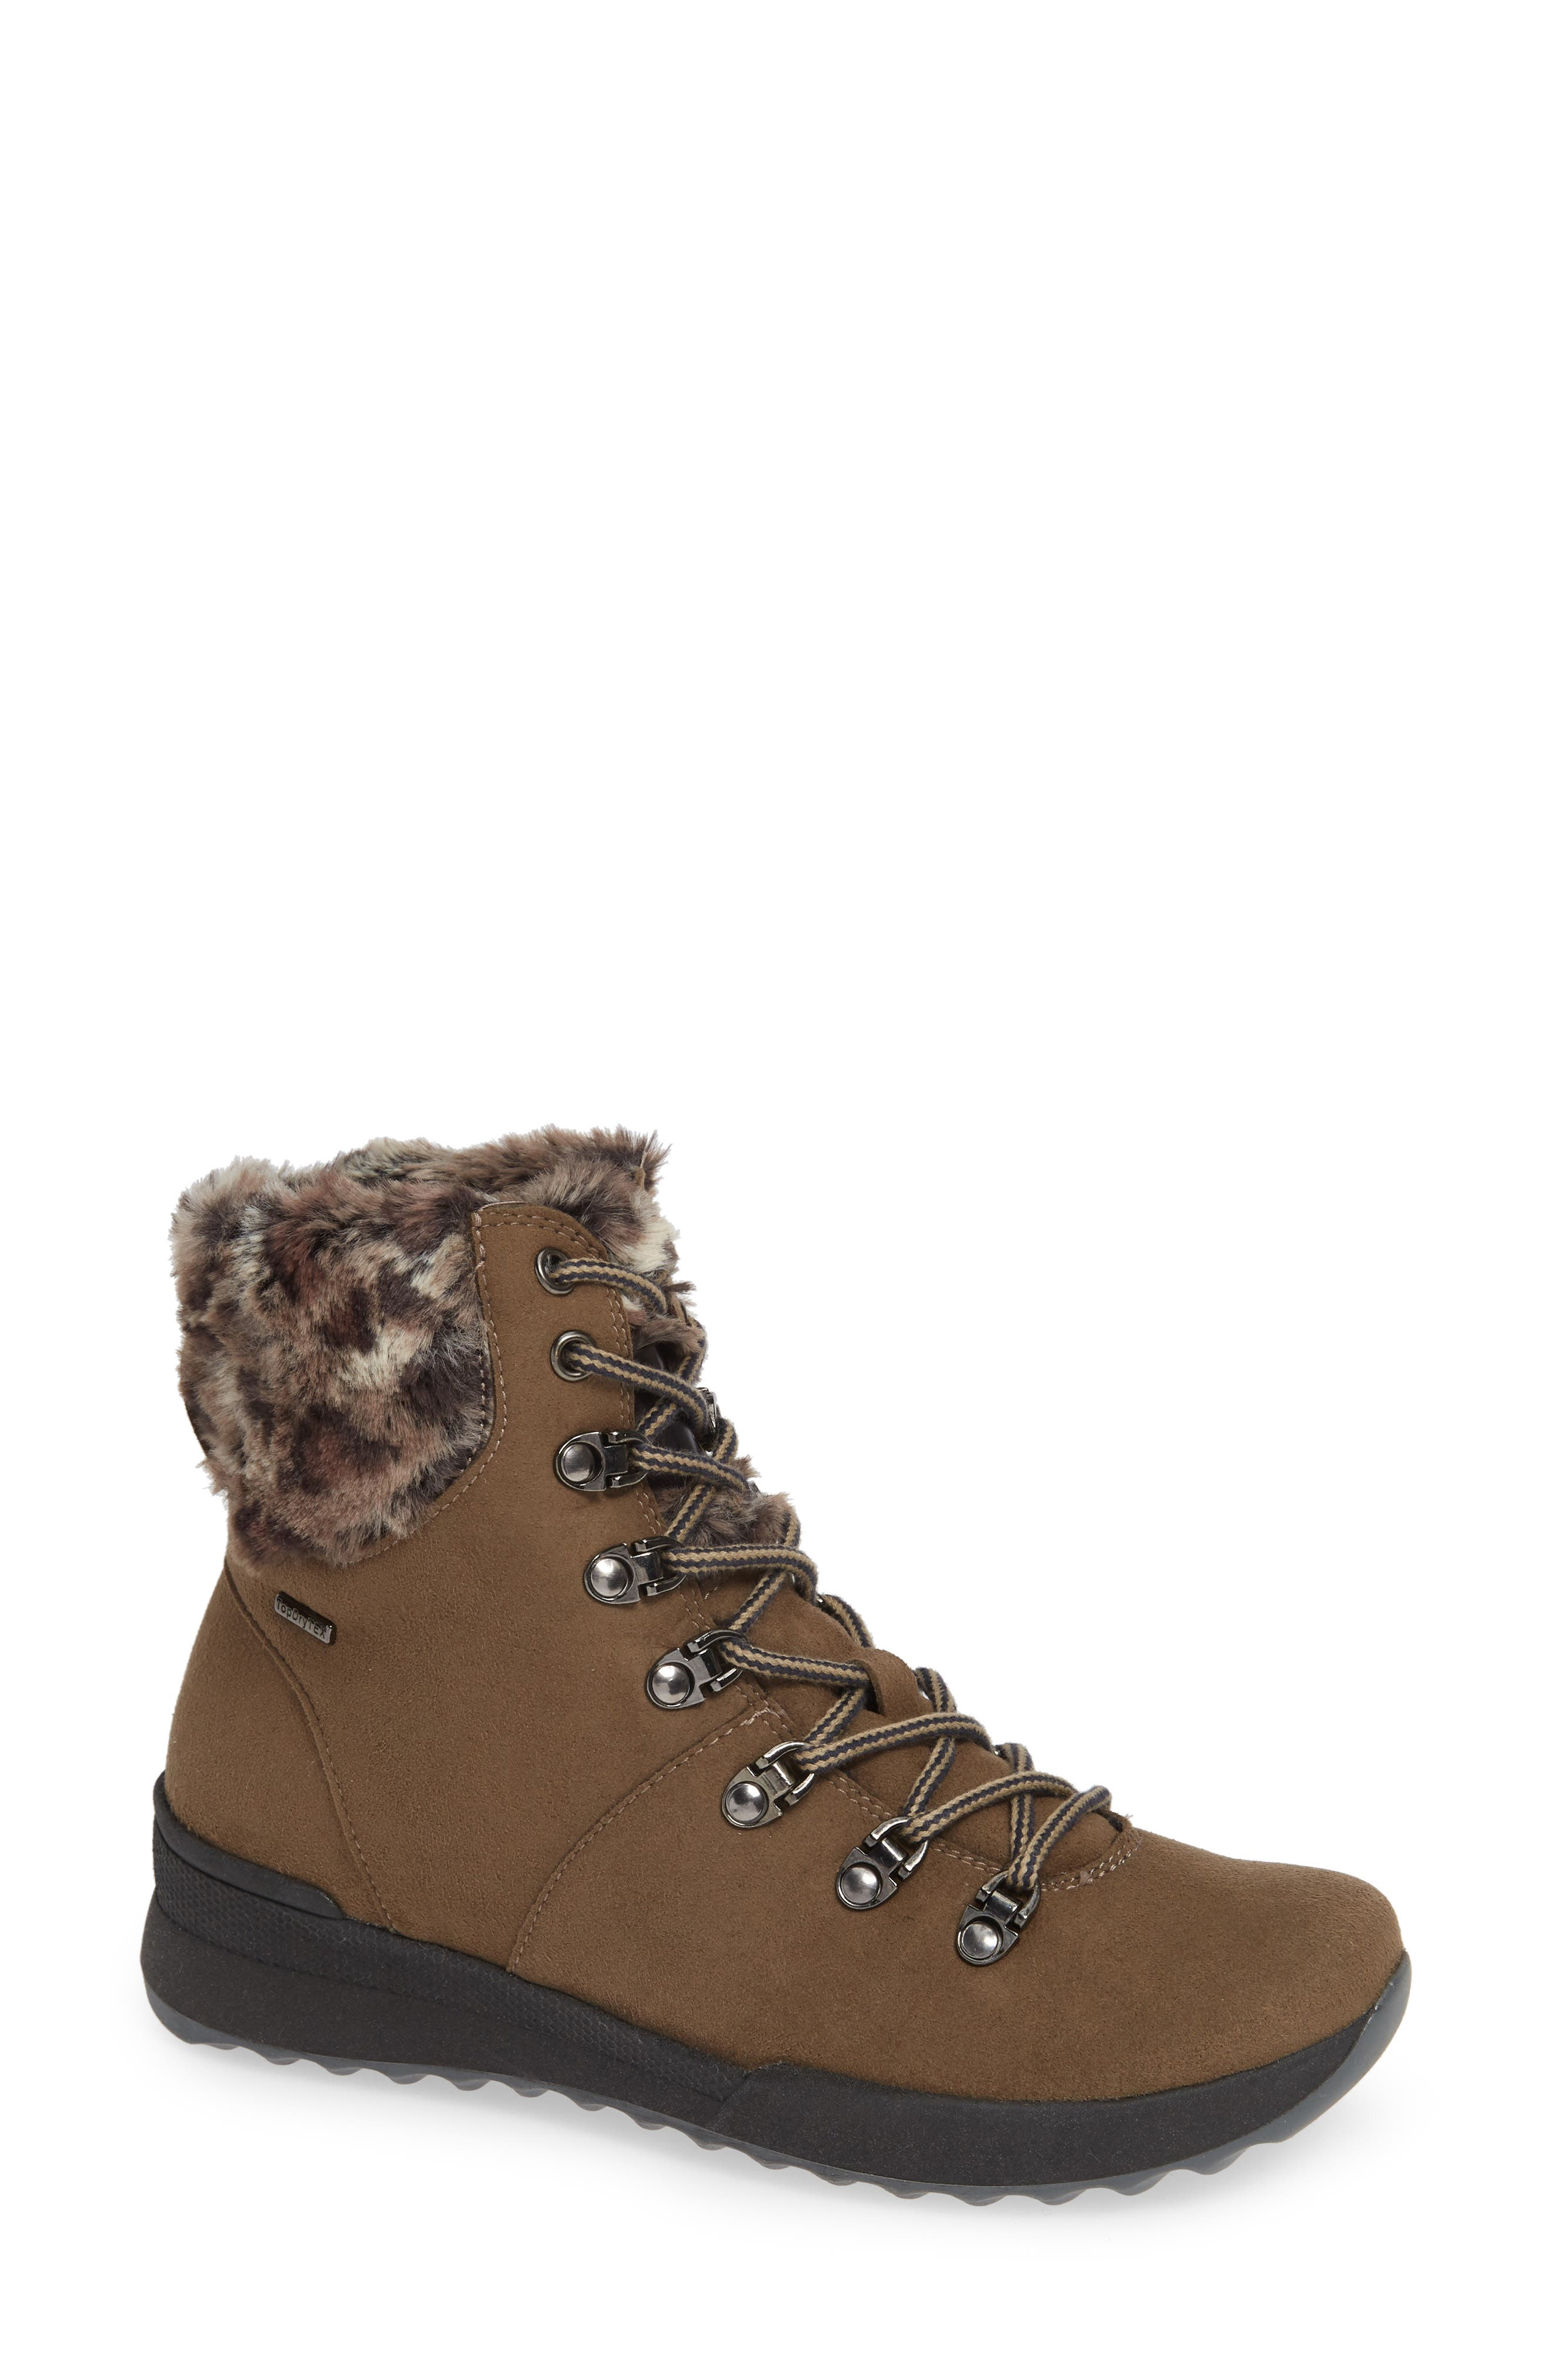 Victoria 17 Bootie,                             Main thumbnail 1, color,                             BROWN LEATHER